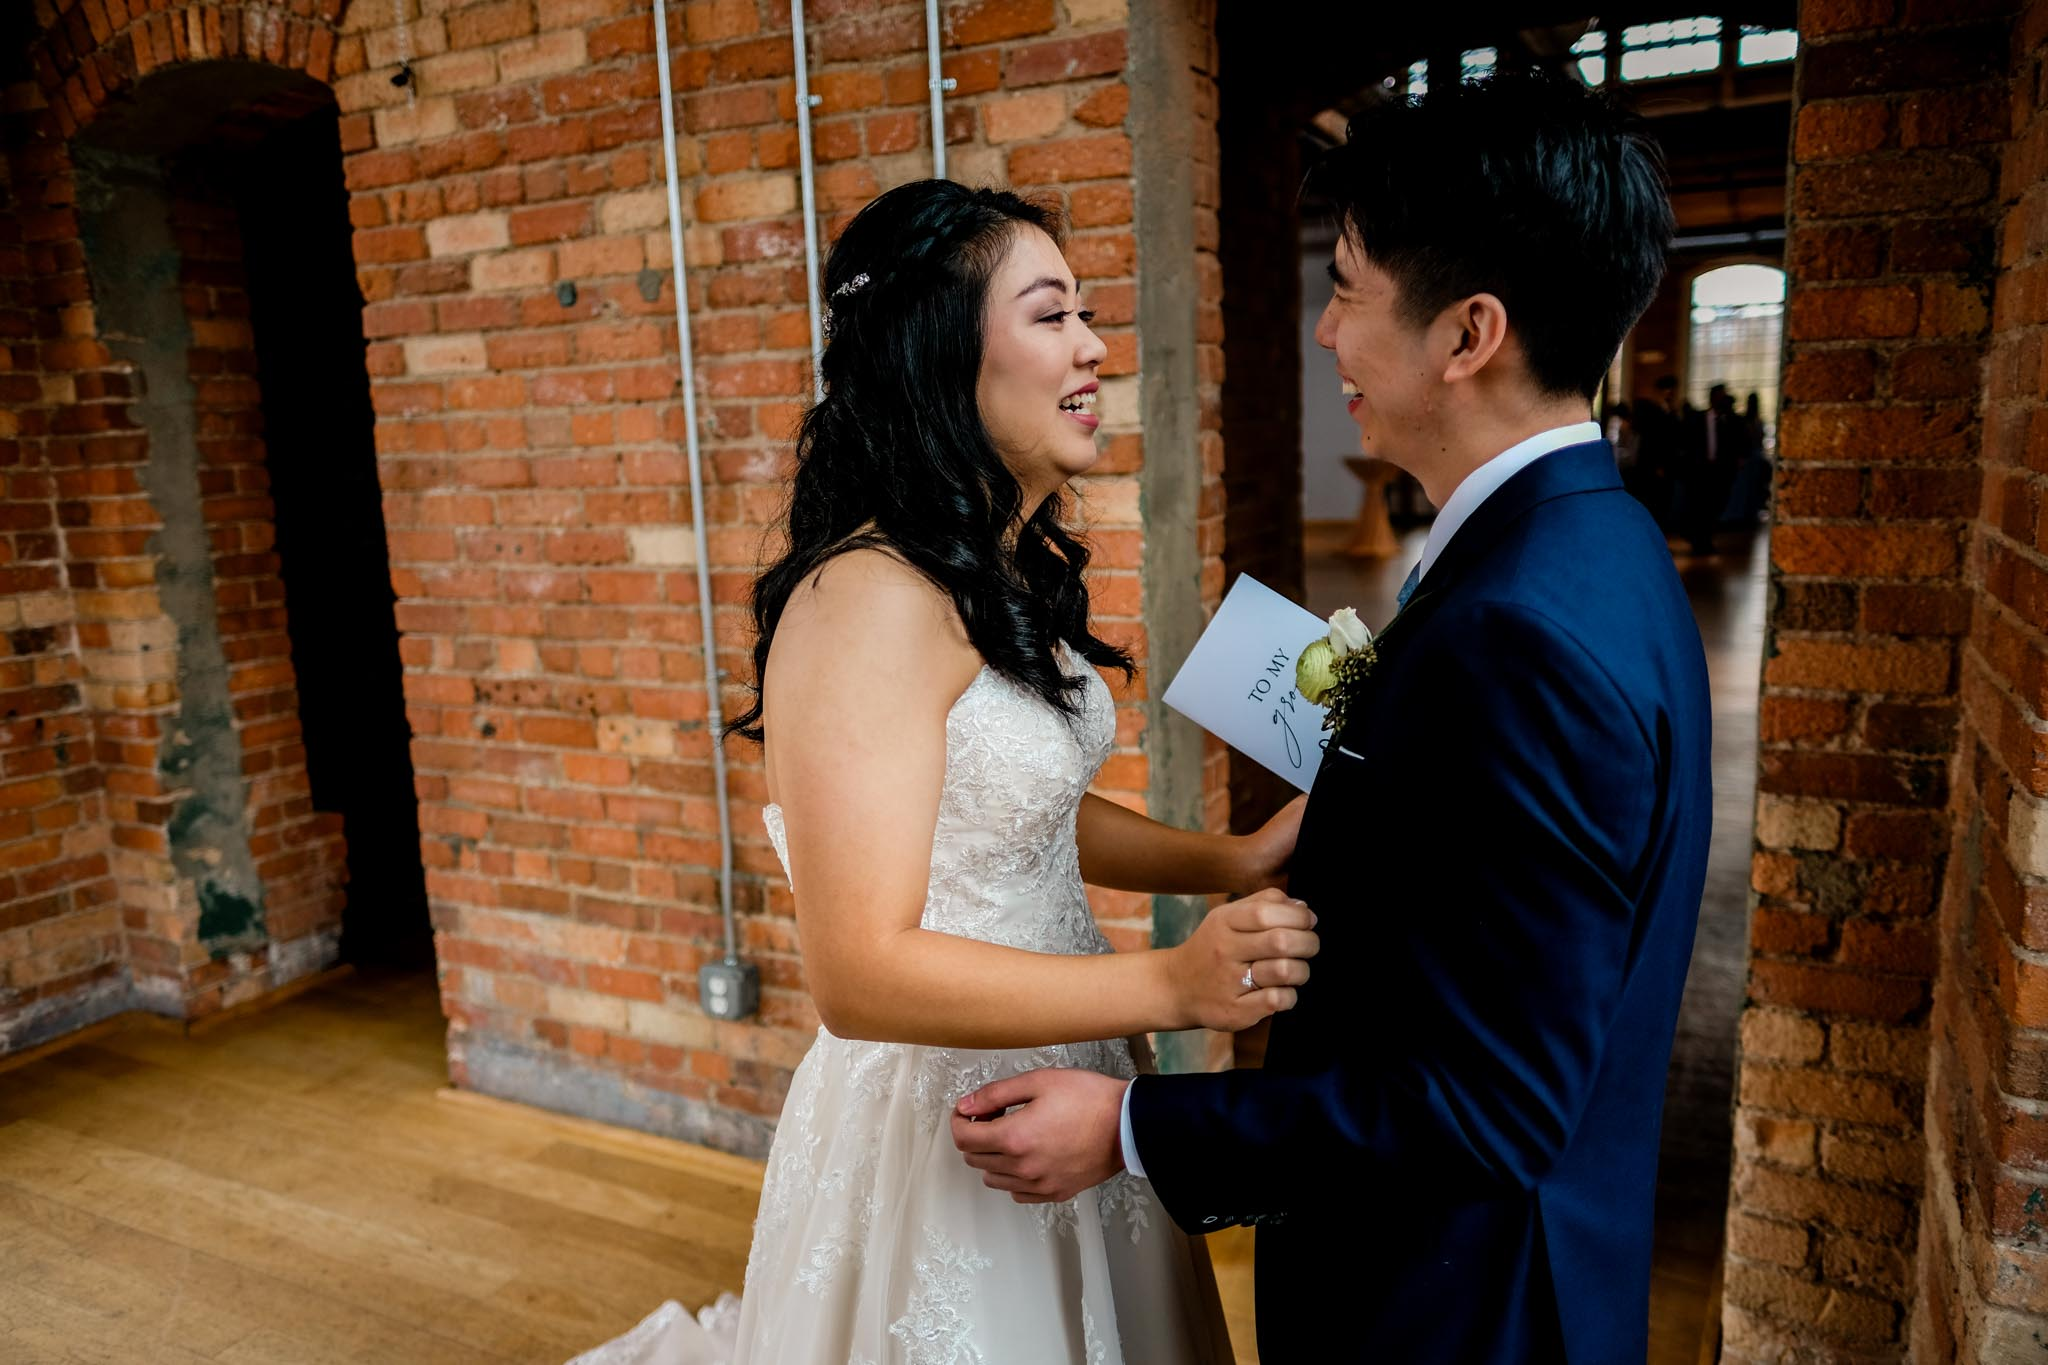 Bride laughing with groom | The Cotton Room Wedding Photography | Durham NC | By G. Lin Photography